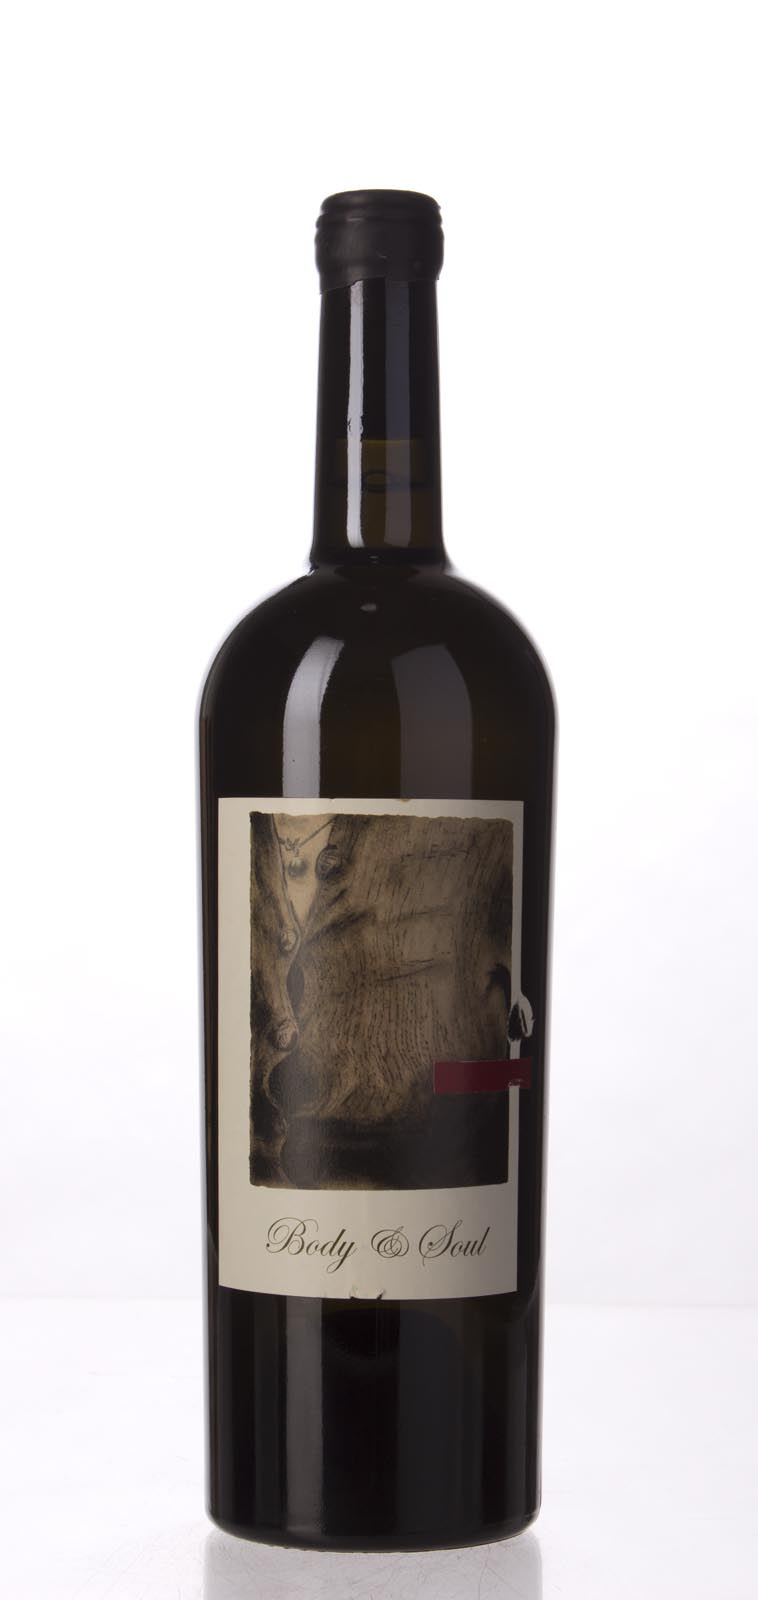 Sine Qua Non Proprietary White Body & Soul 2007, 750mL (WA95-98) from The BPW - Merchants of rare and fine wines.